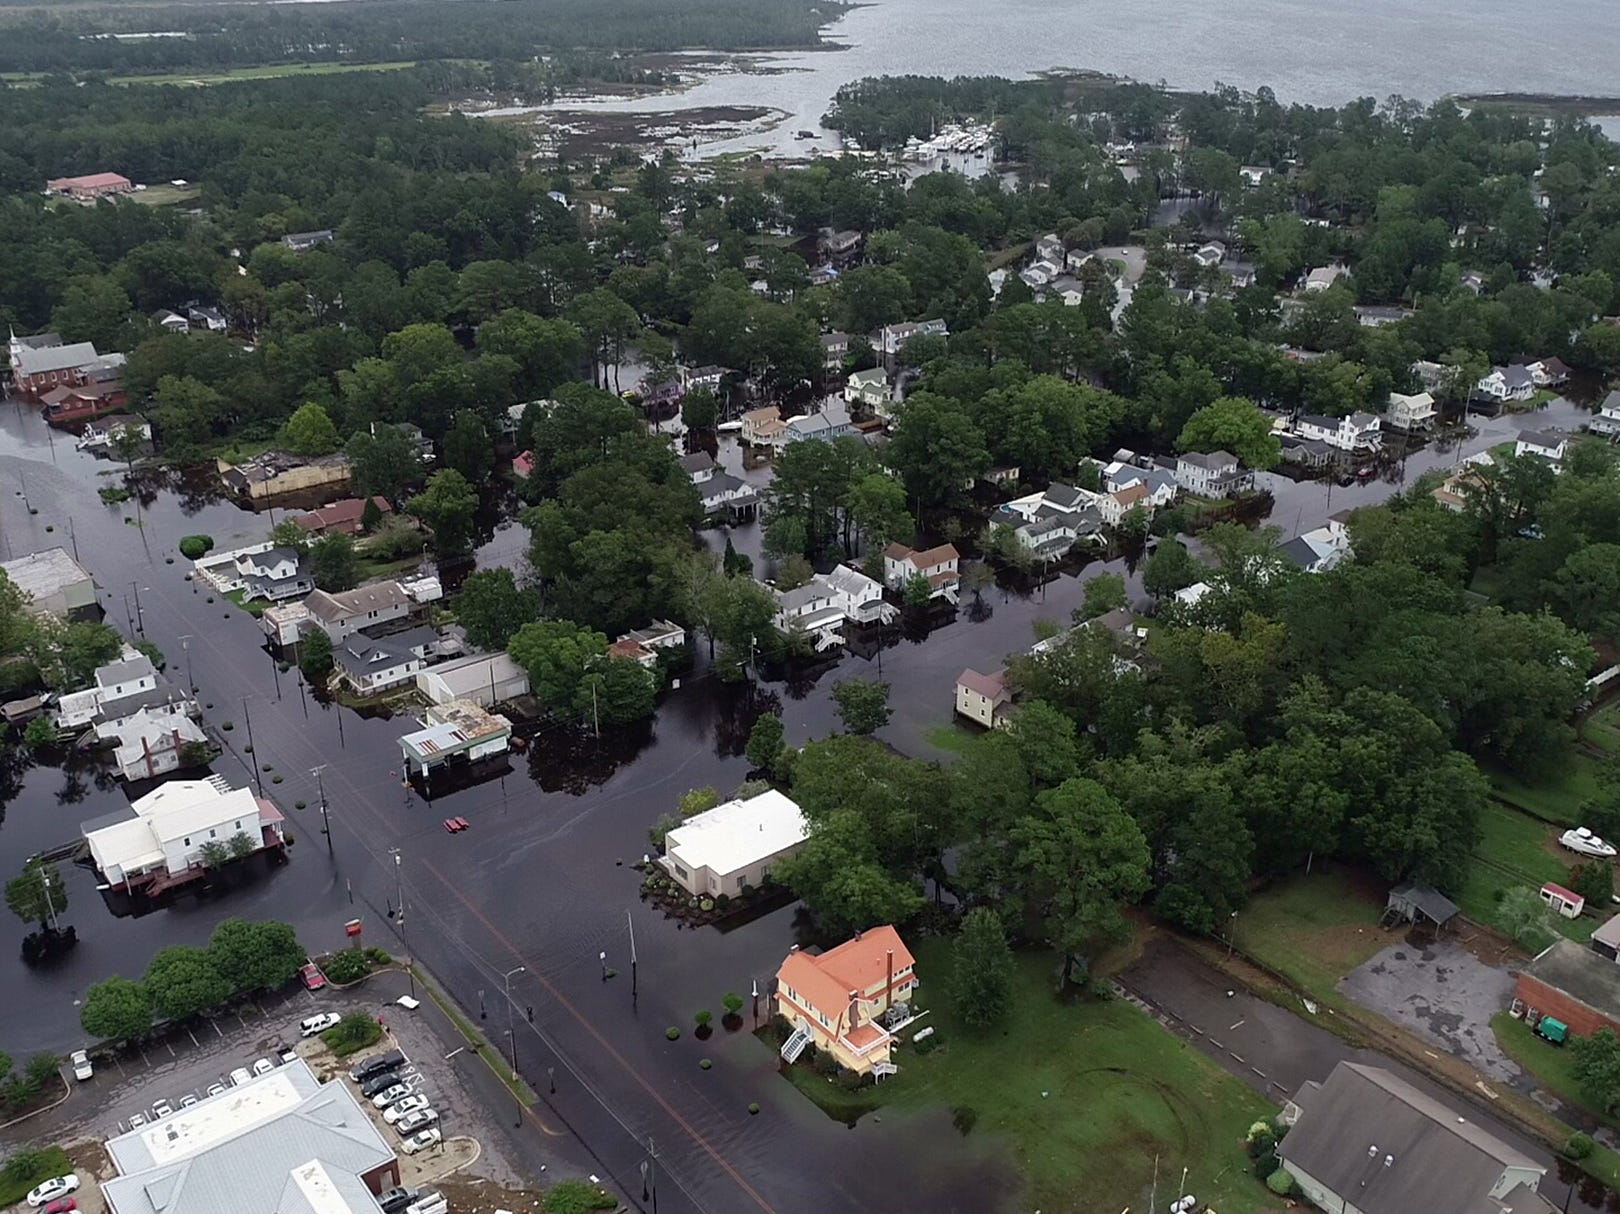 September 15, 2018; Belhaven, NC, USA; Drone photos of local flooding in Belhaven, North Carolina on Saturday, September 15, 2018.